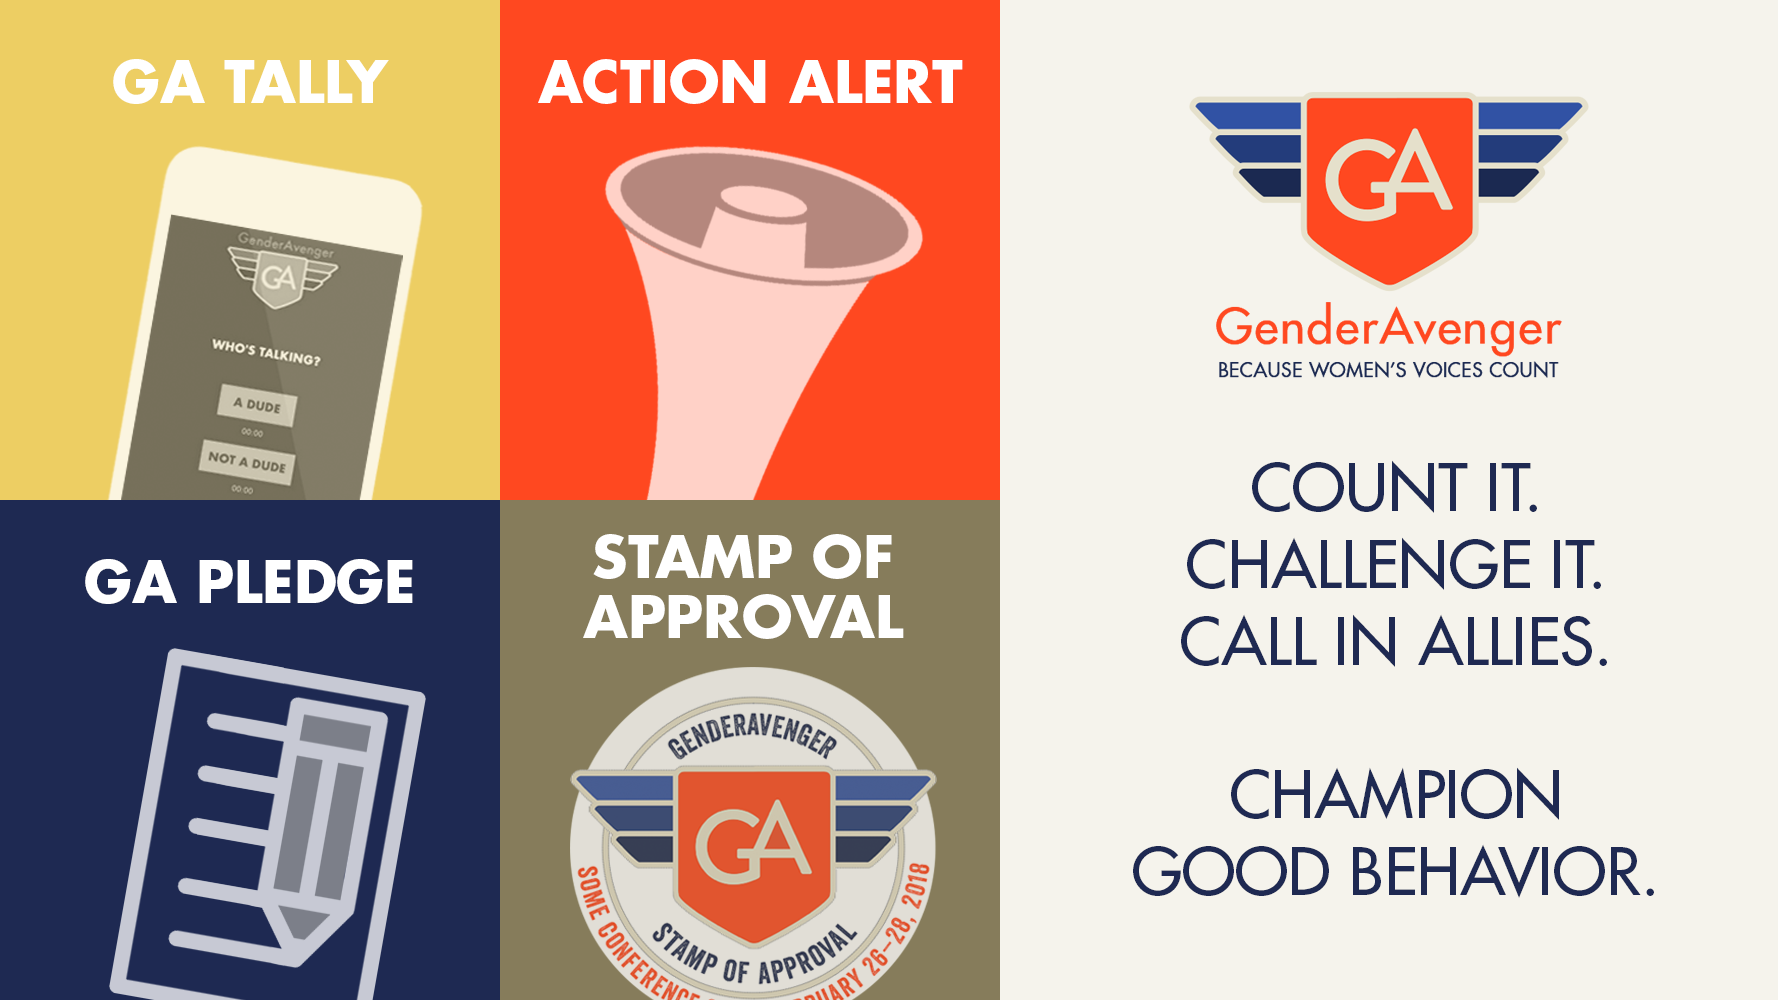 GenderAvenger's Tools: the GA Tally, Action Alerts. the GA Pledge, and the Stamp of Approval